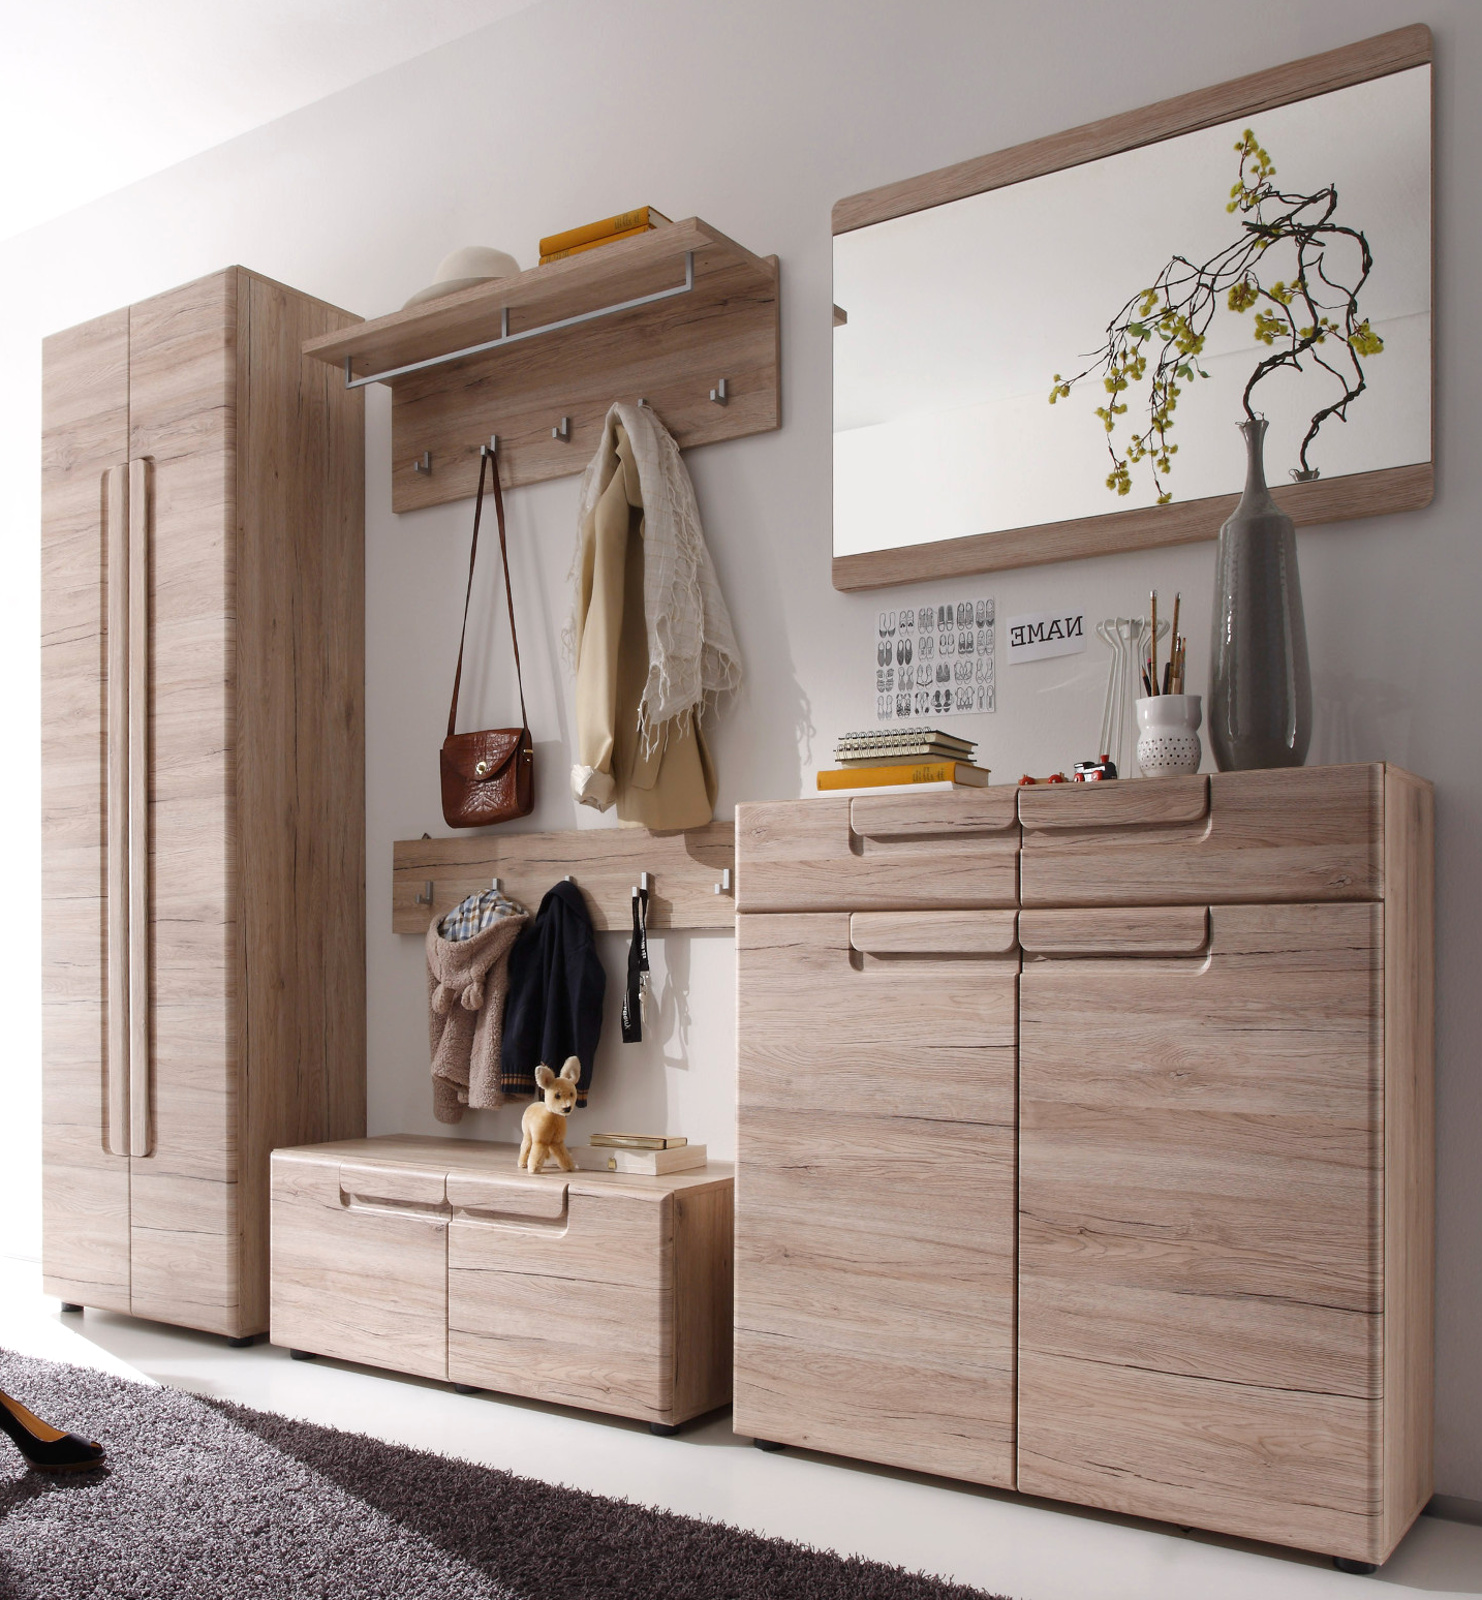 garderobe malea eiche san remo g nstig kaufen. Black Bedroom Furniture Sets. Home Design Ideas